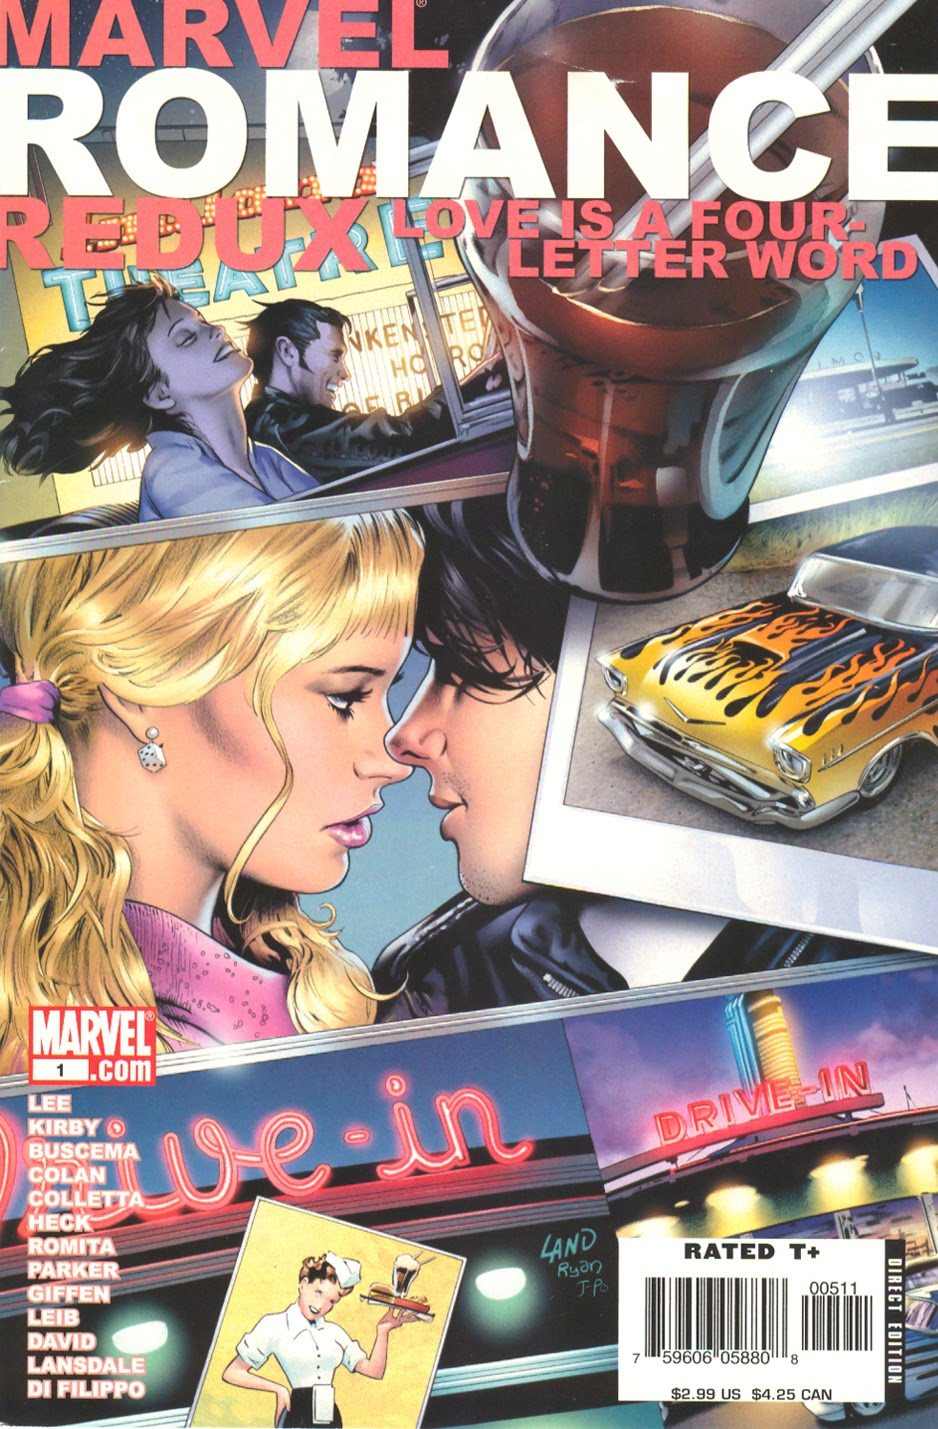 Marvel Romance Redux: Love Is a Four-Letter Word Vol 1 1